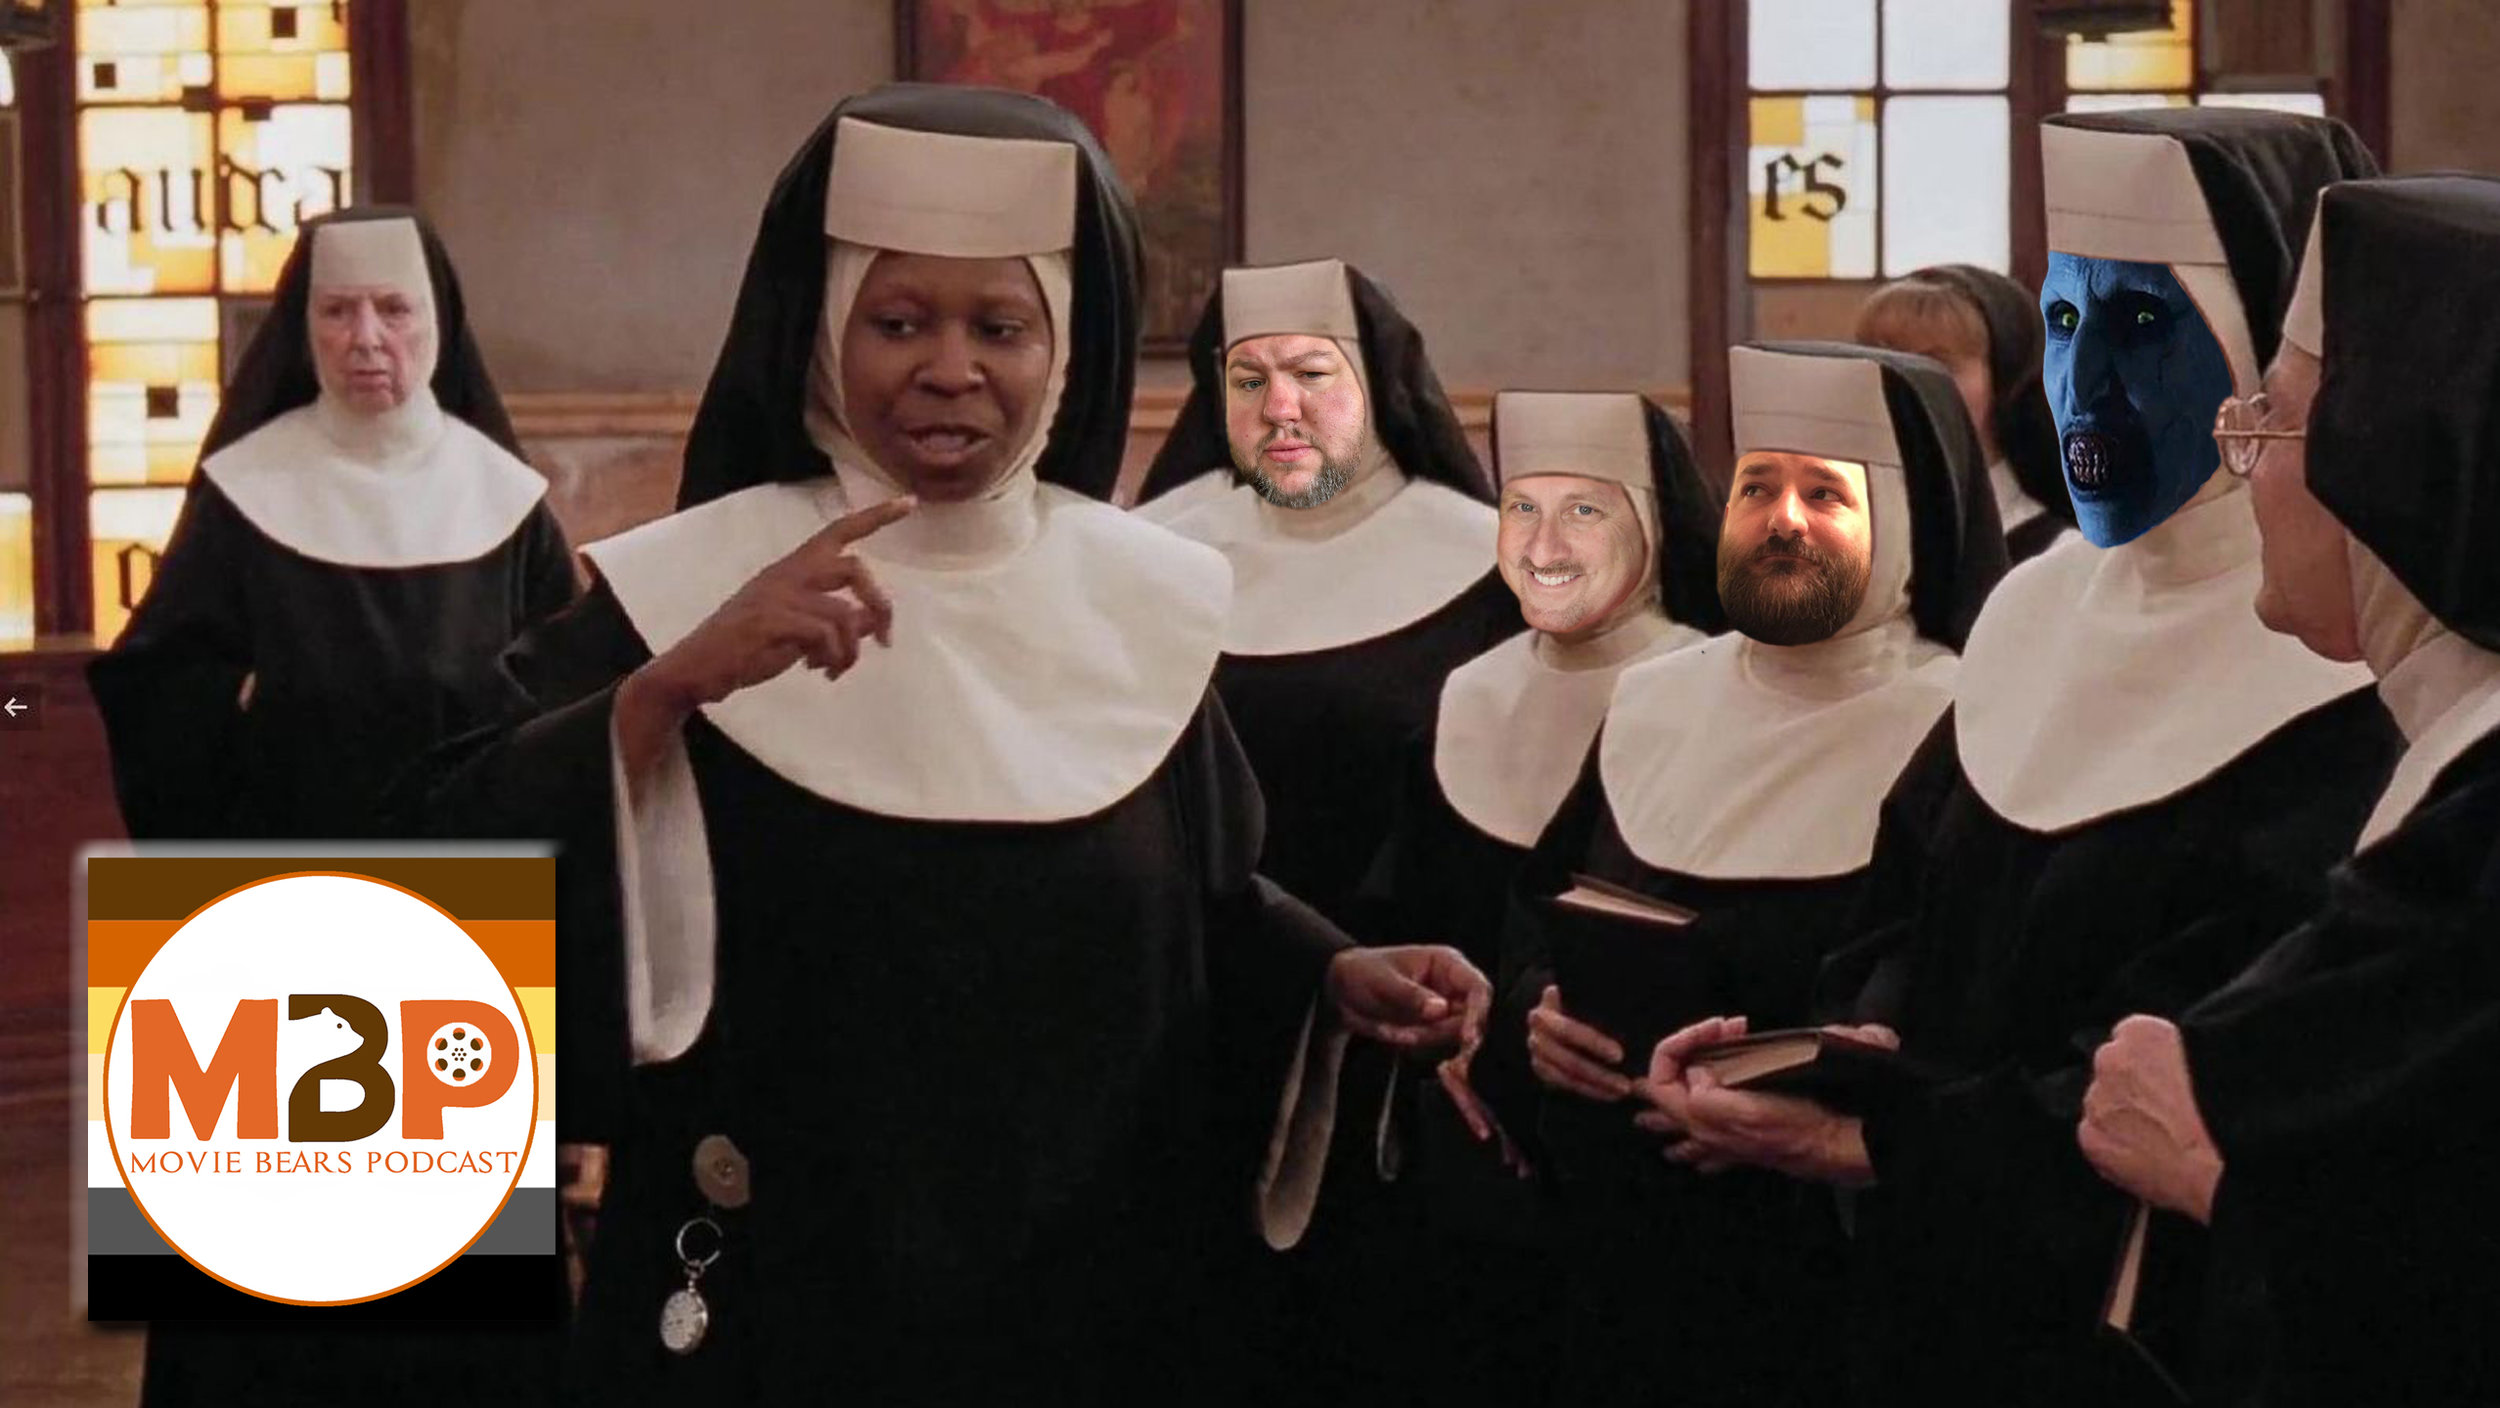 """MBP e294 - 'The Nun' and 'Sister Act' (9/11/18)    We've got a strange, but fitting double feature on deck for this week's episode. We review the latest creepy addition to 'The Conjuring' cinematic universe - 'The Nun'- before diving into a retrospective on Whoopi Goldberg's 'Sister Act.' That's right, it's our """"BAD HABITS"""" episode. So, say your prayers and throw in a few 'Hail Mary's' while you listen in!"""